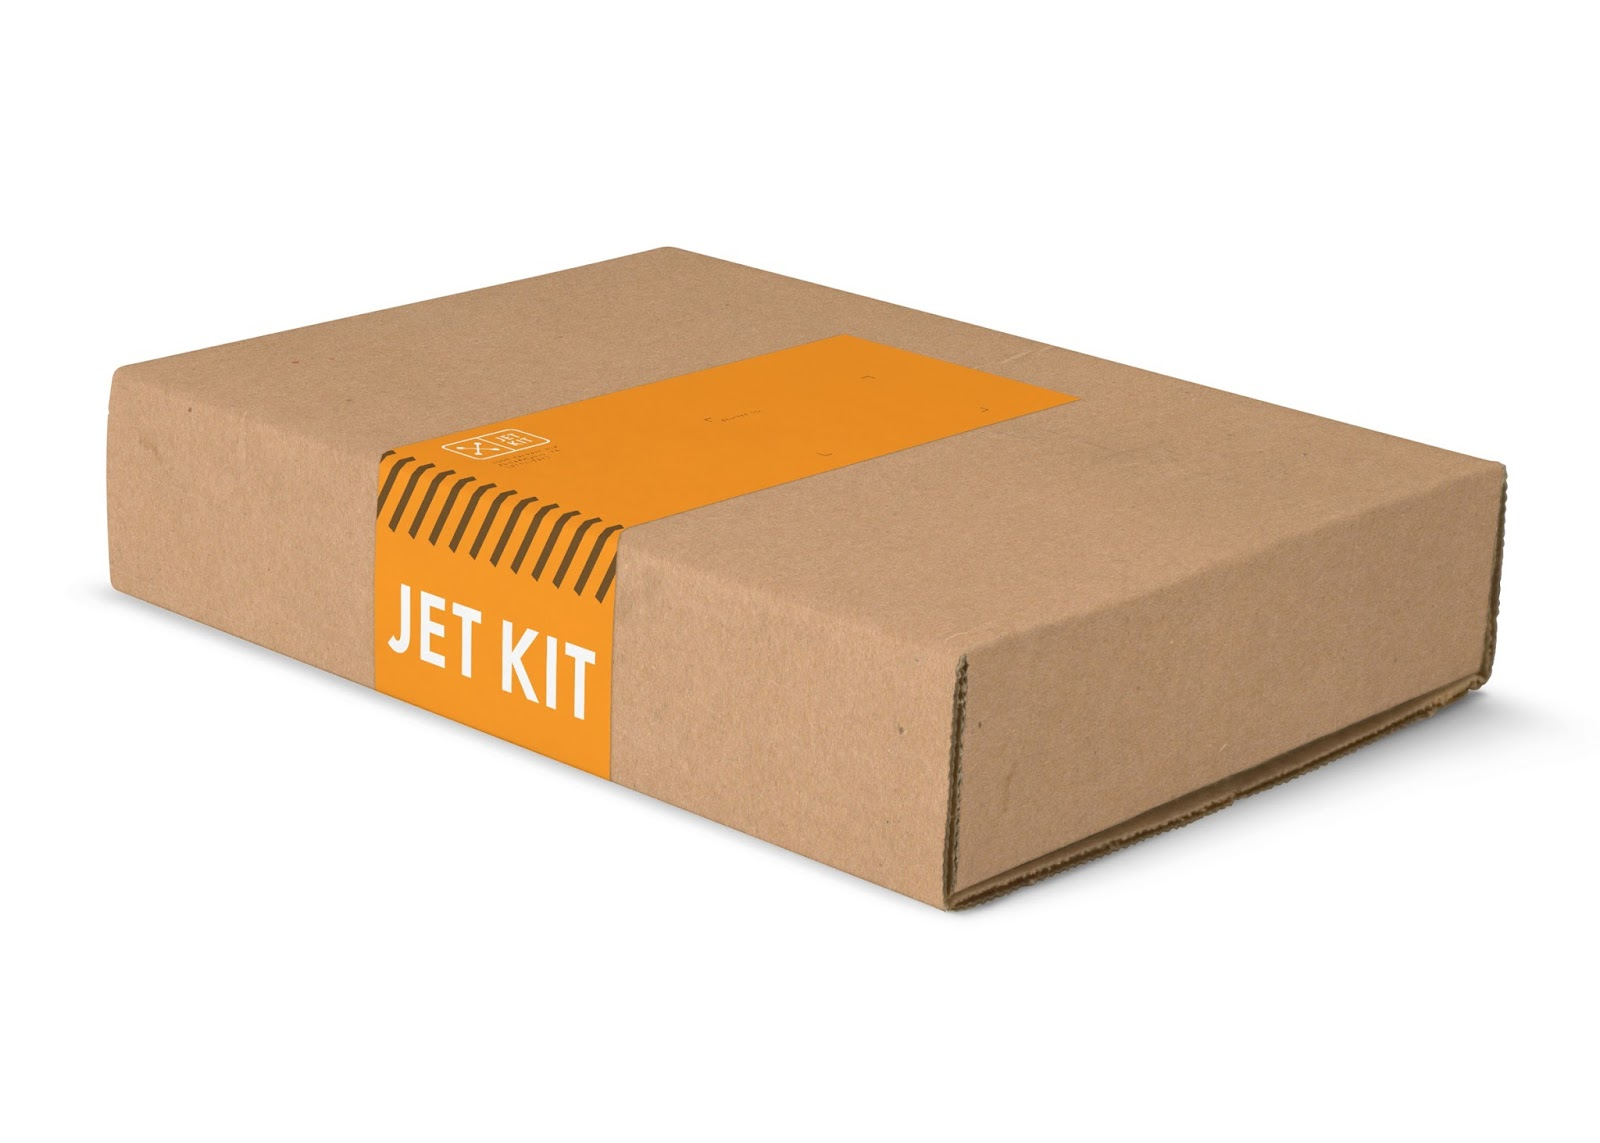 Jet Kit On Packaging Of The World